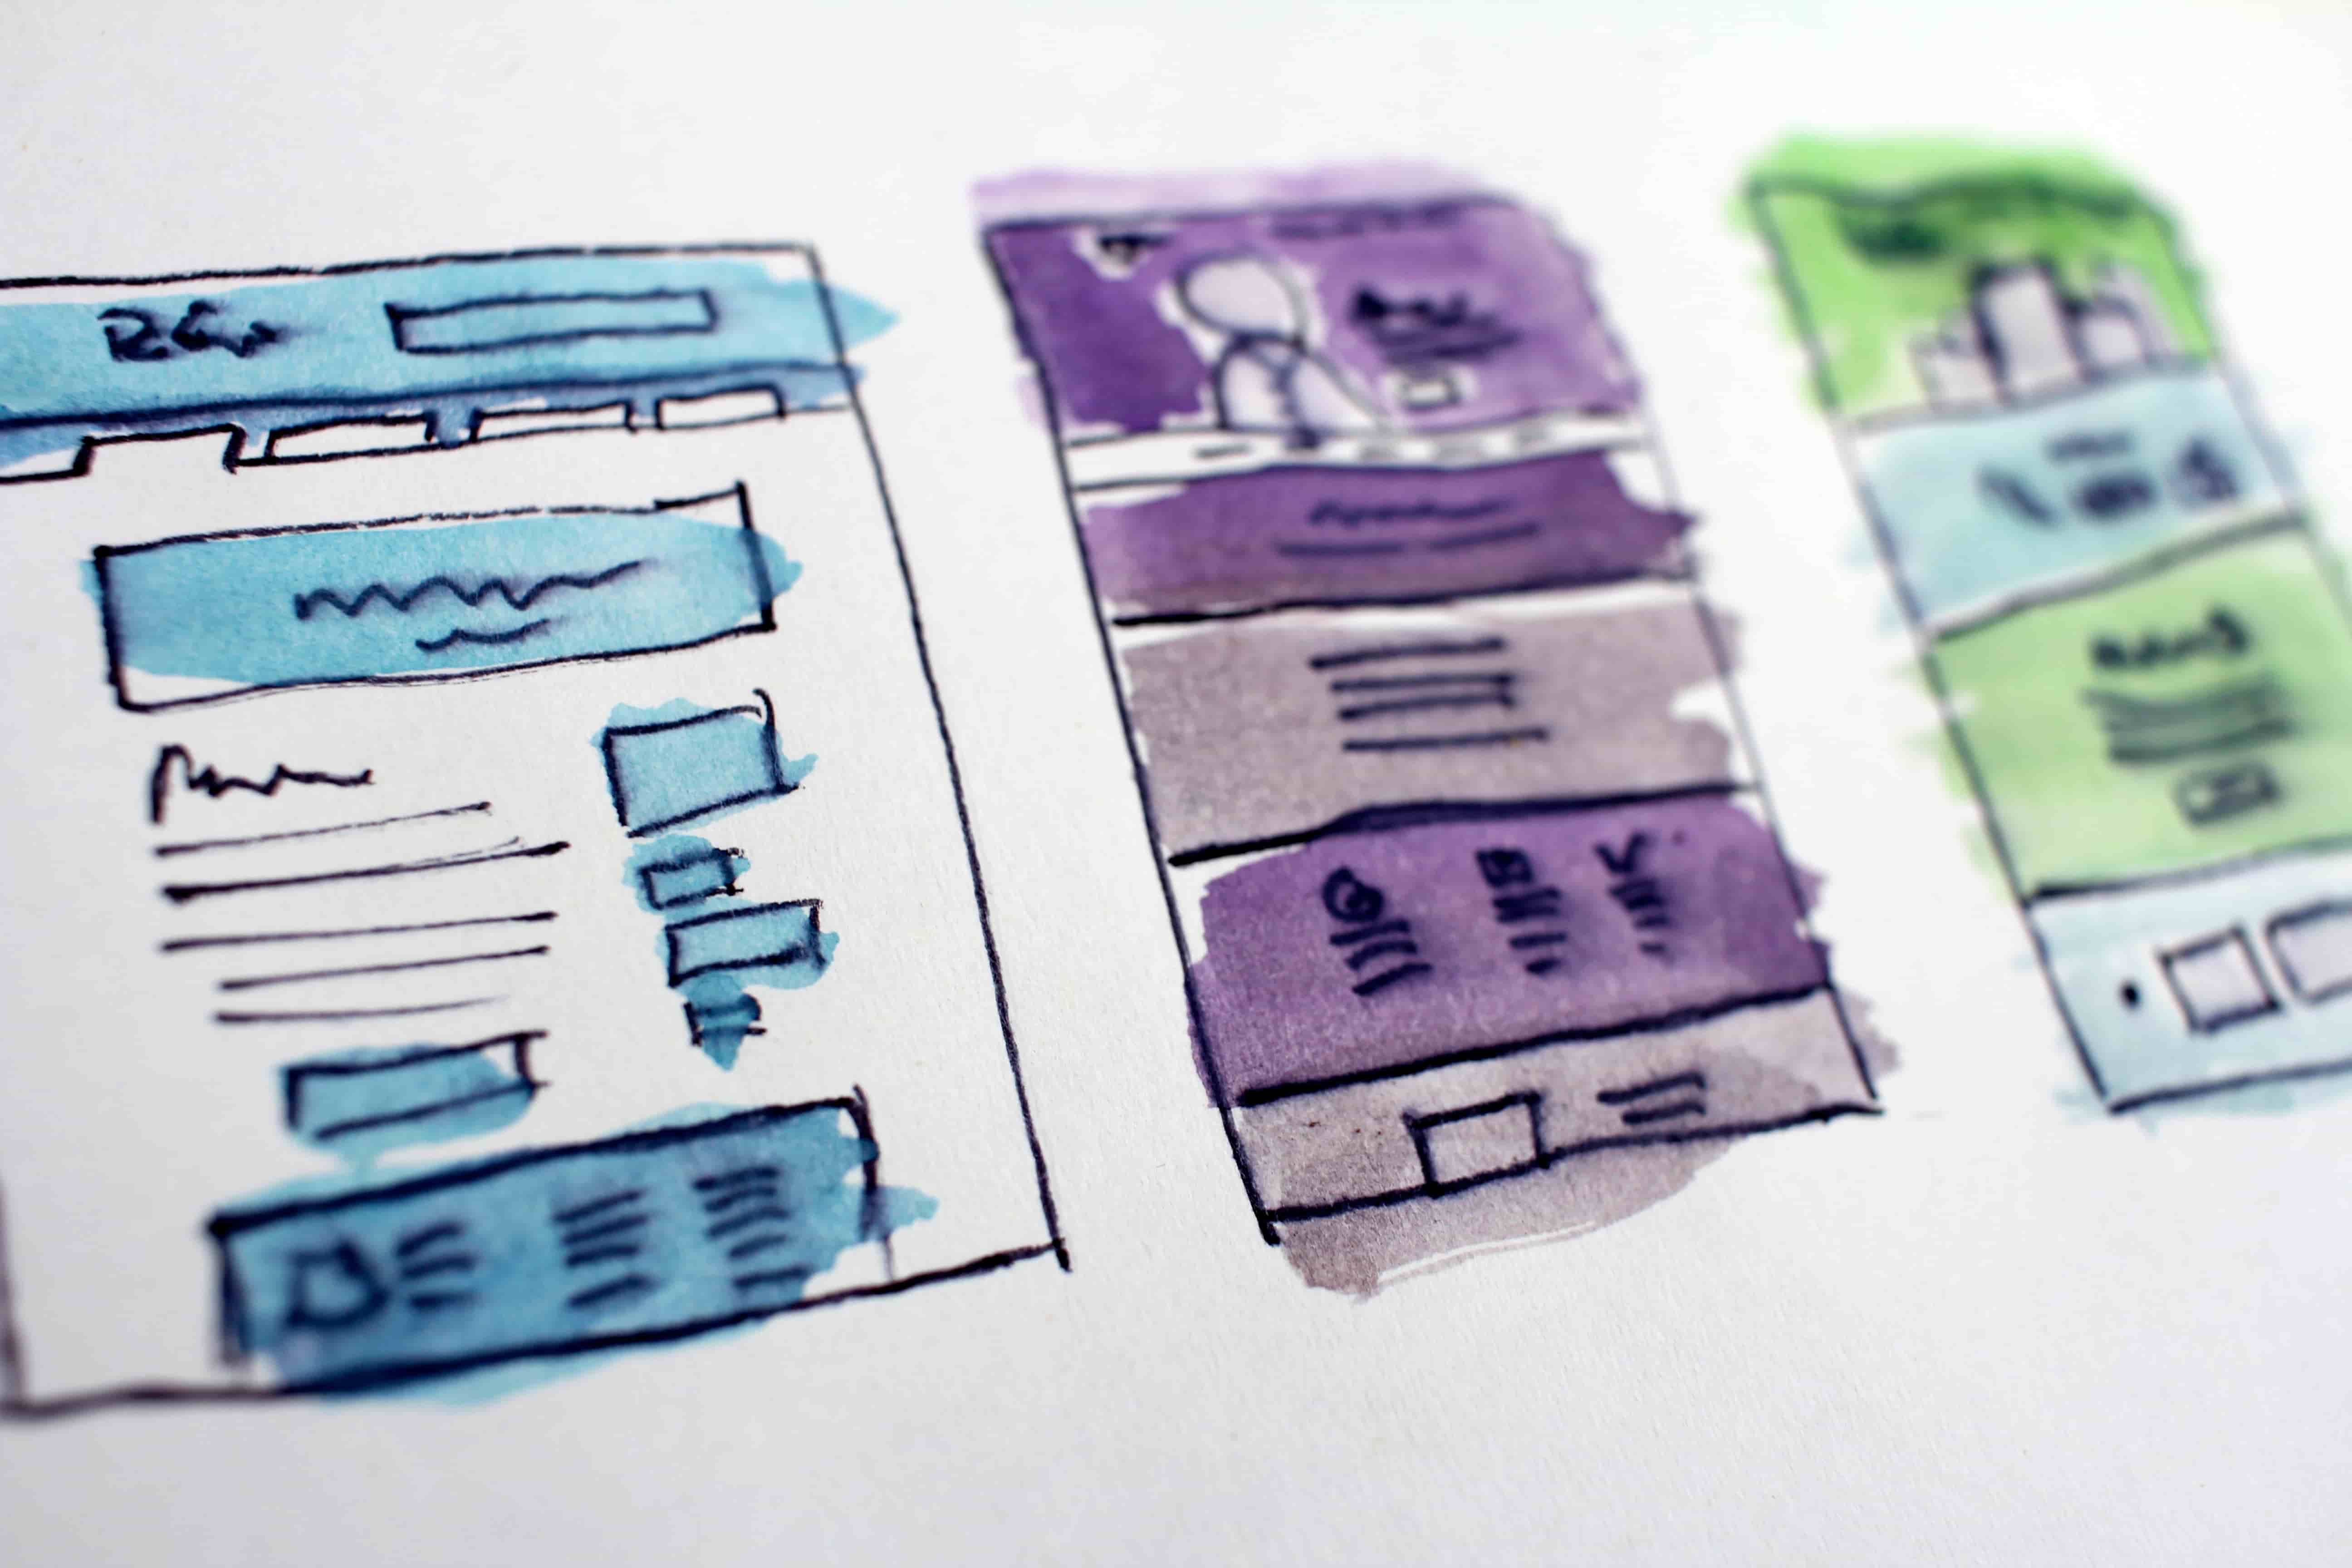 Usability testing will improve how customers interact with a product or website